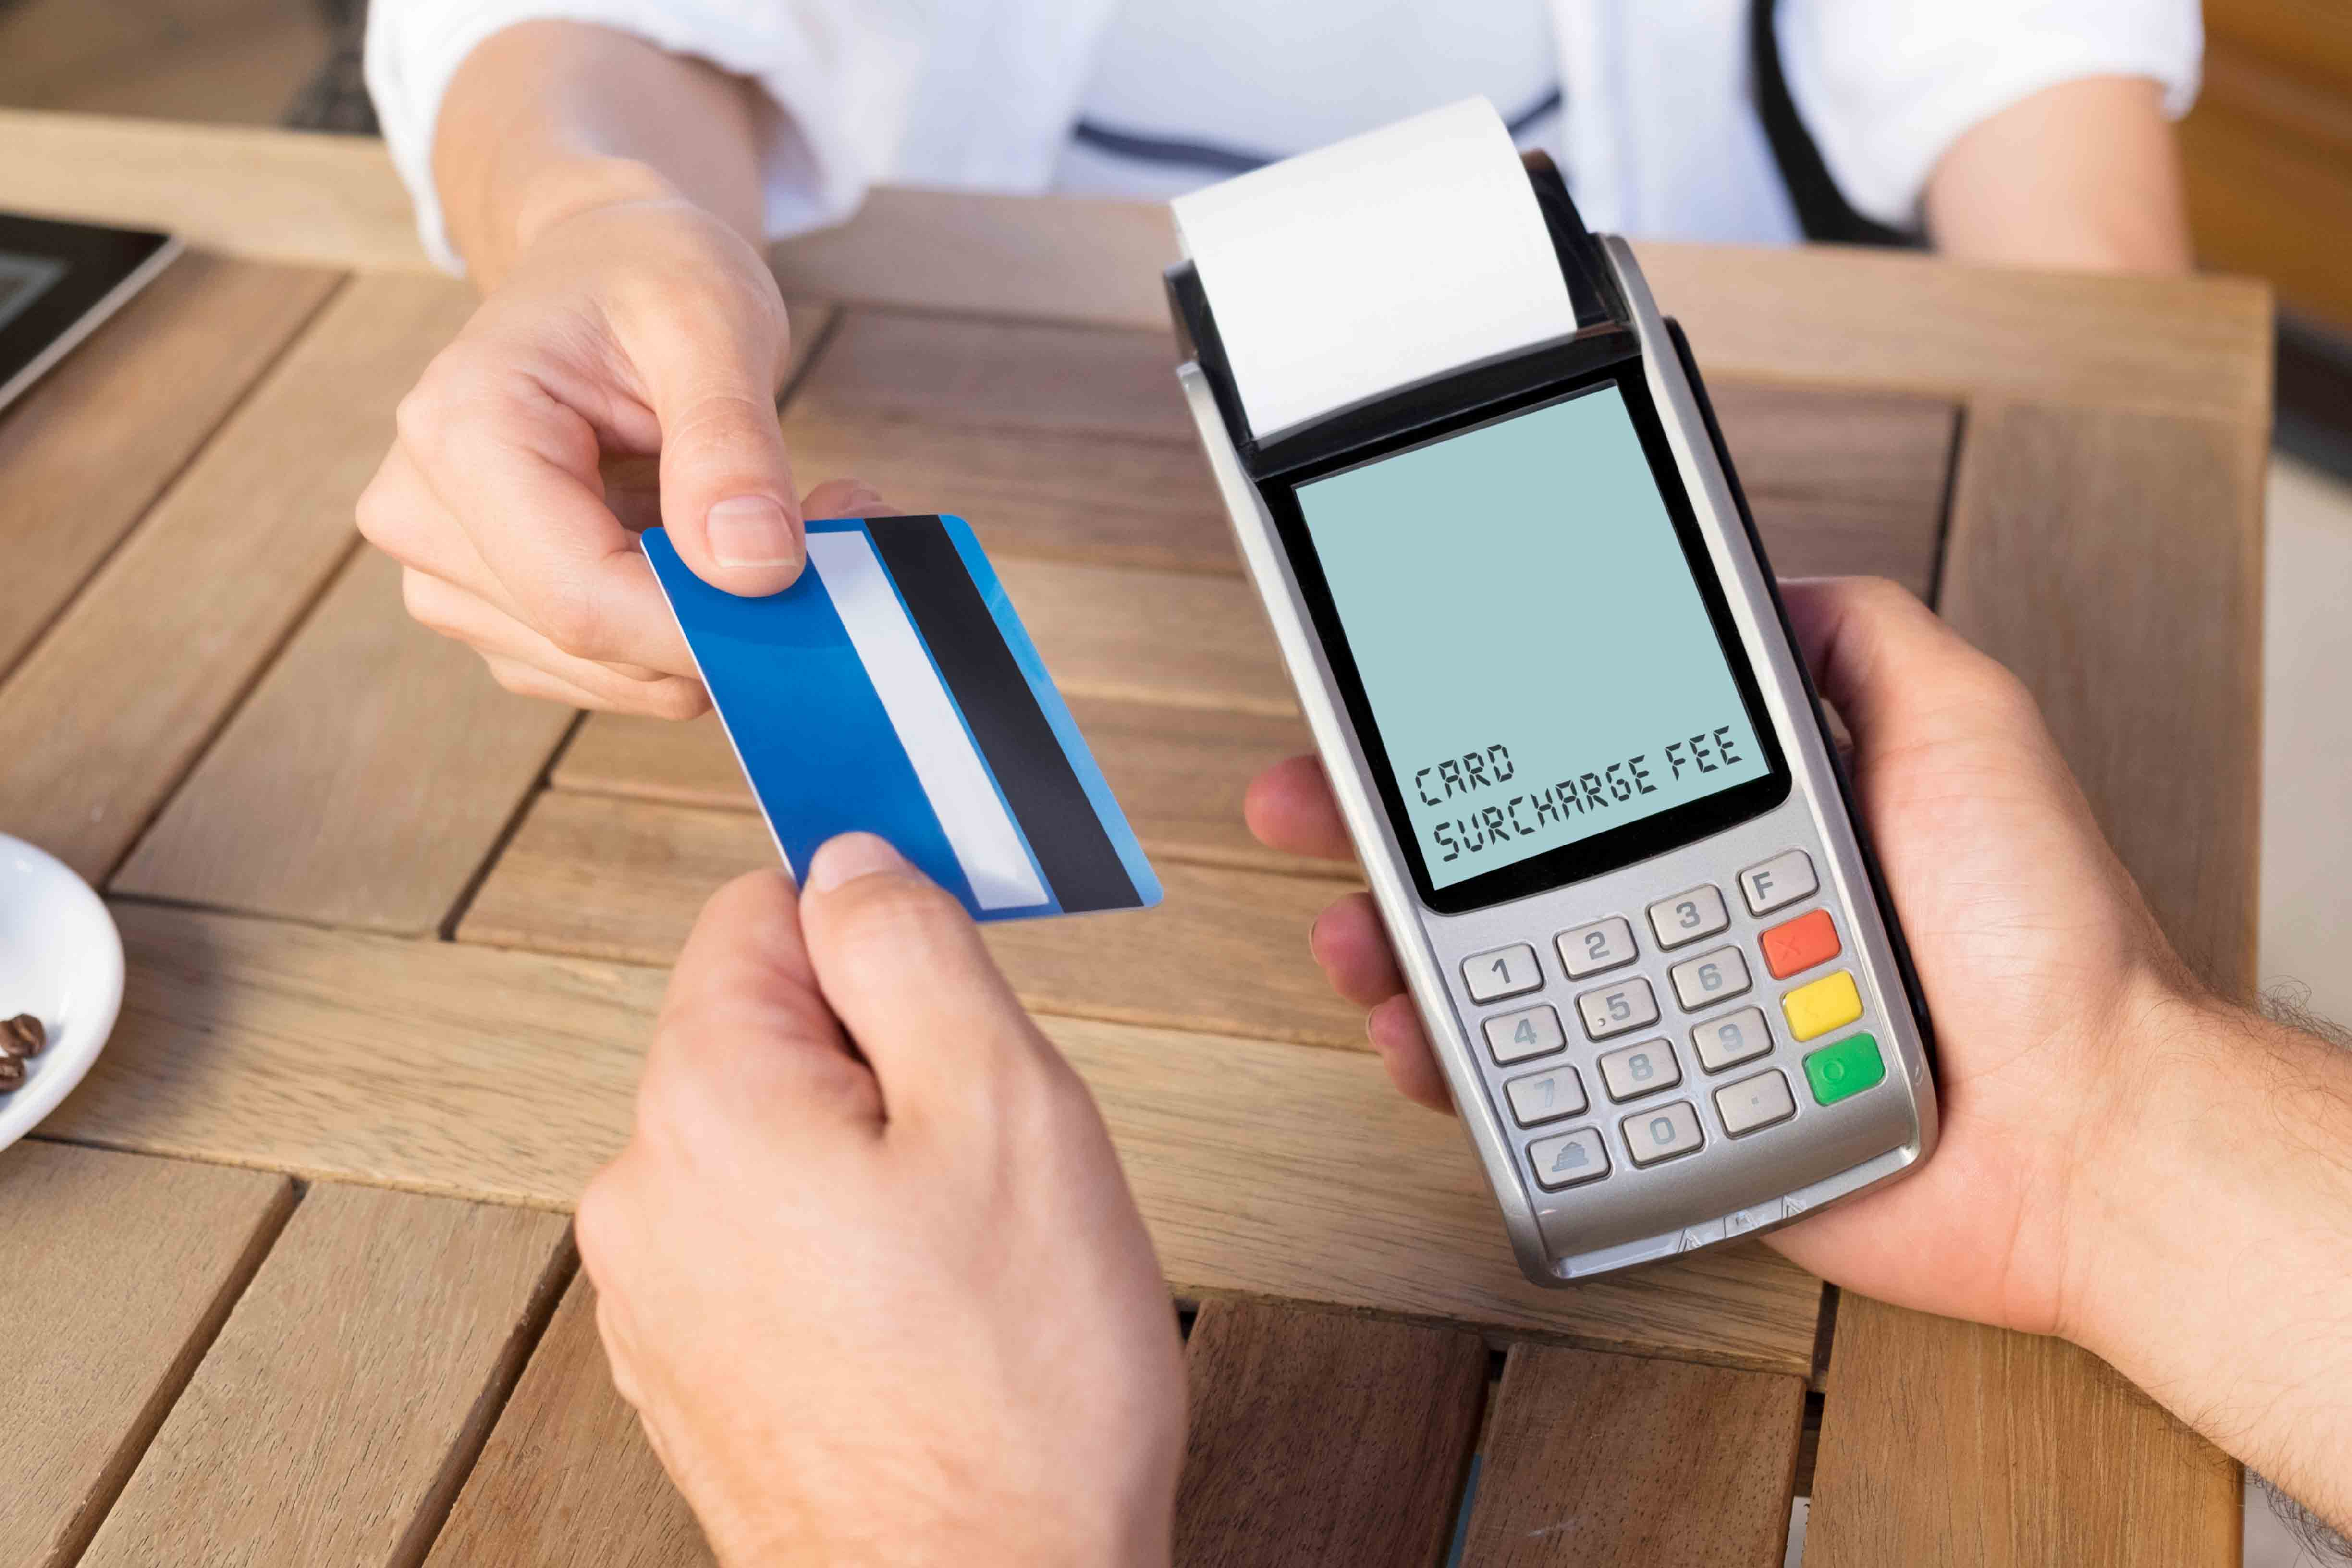 Card Surcharge